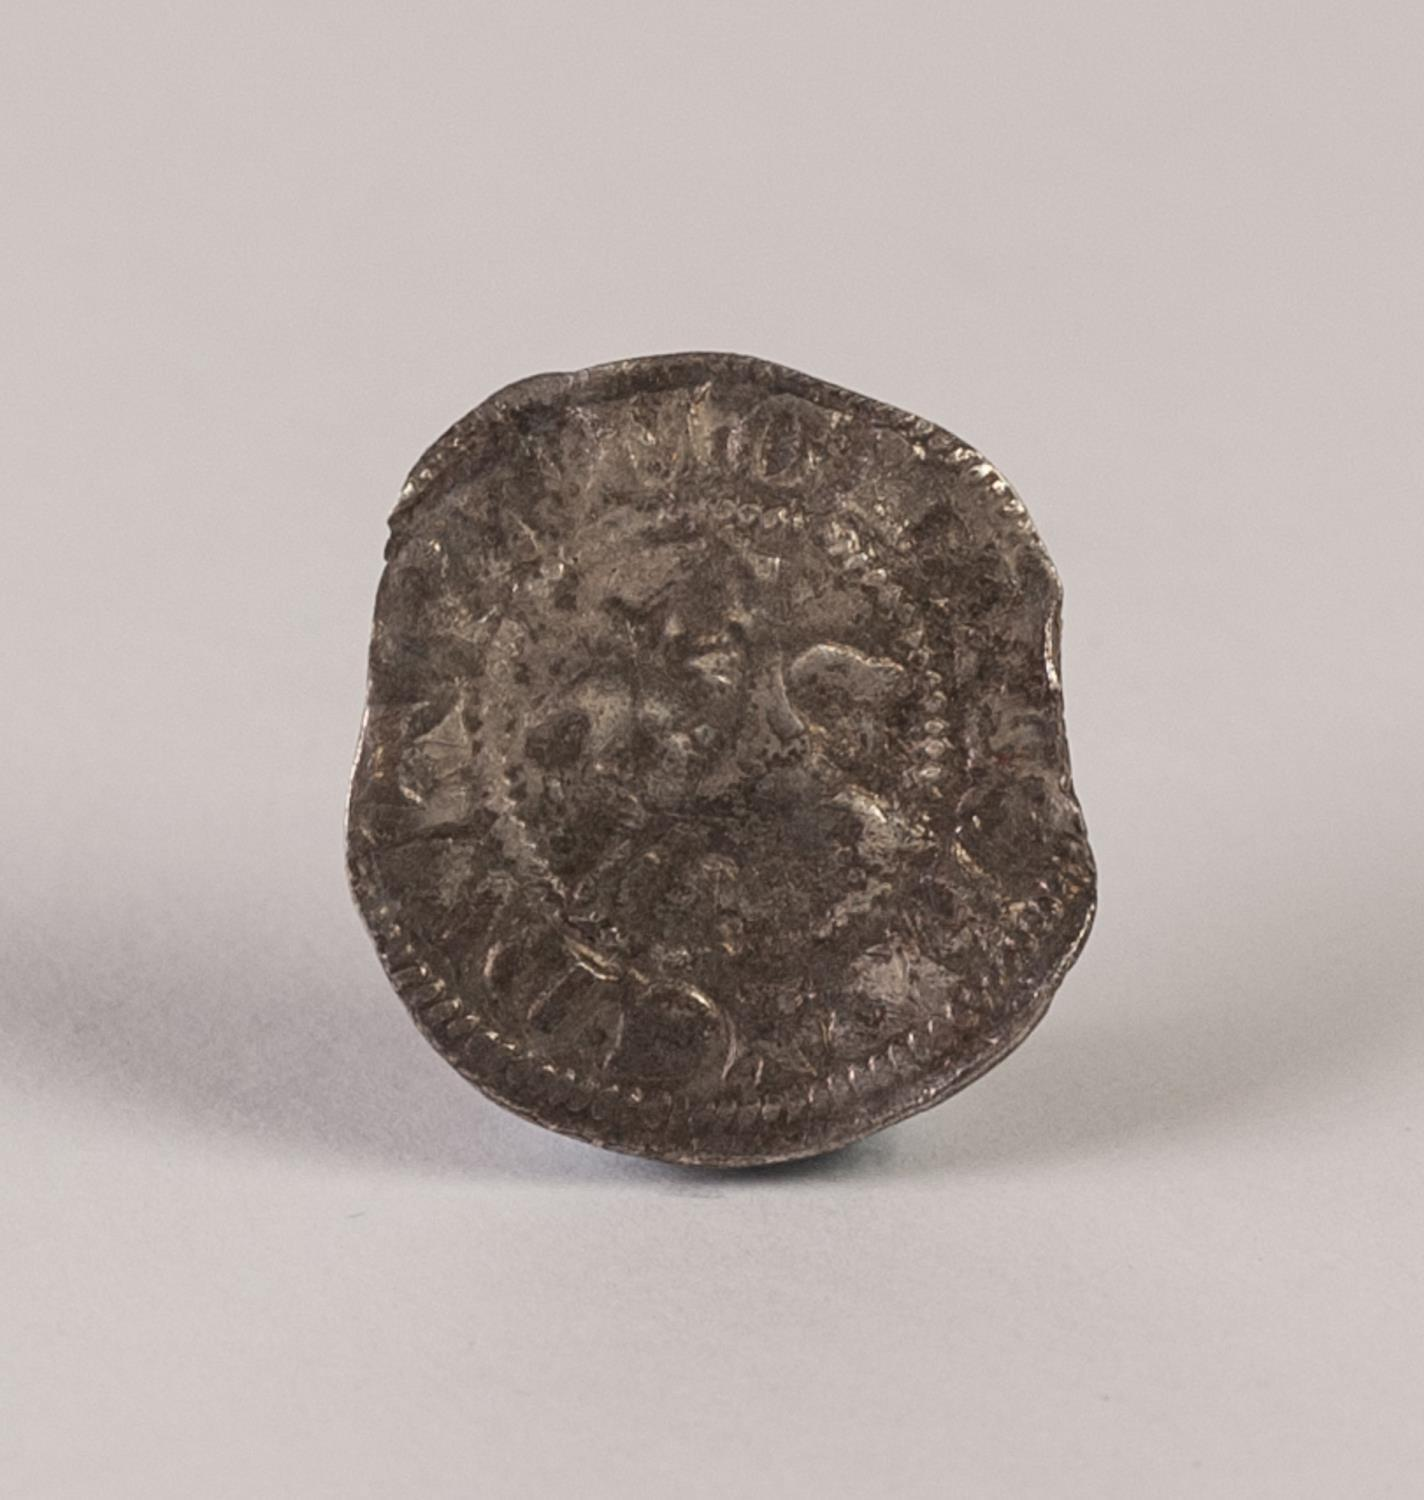 Lot 7 - EDWARD I HAMMERED SILVER LONG CROSS PENNY COIN, Canterbury, some looses